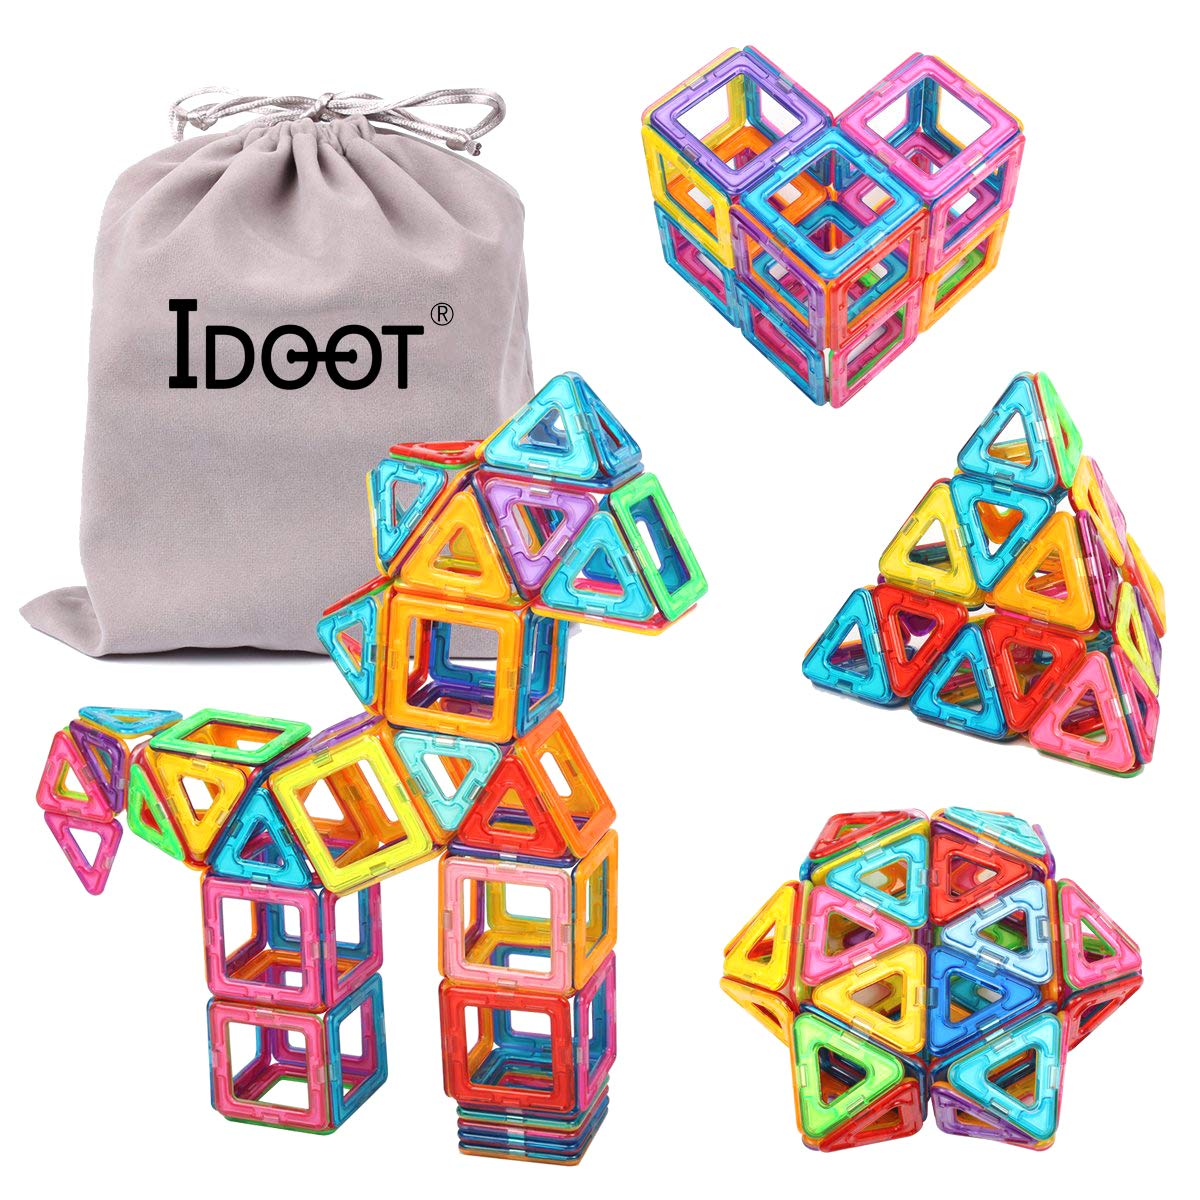 Magnetic Tiles Building Blocks Set Educational Toys for Kids with Storage Bag - 64Pcs by idoot